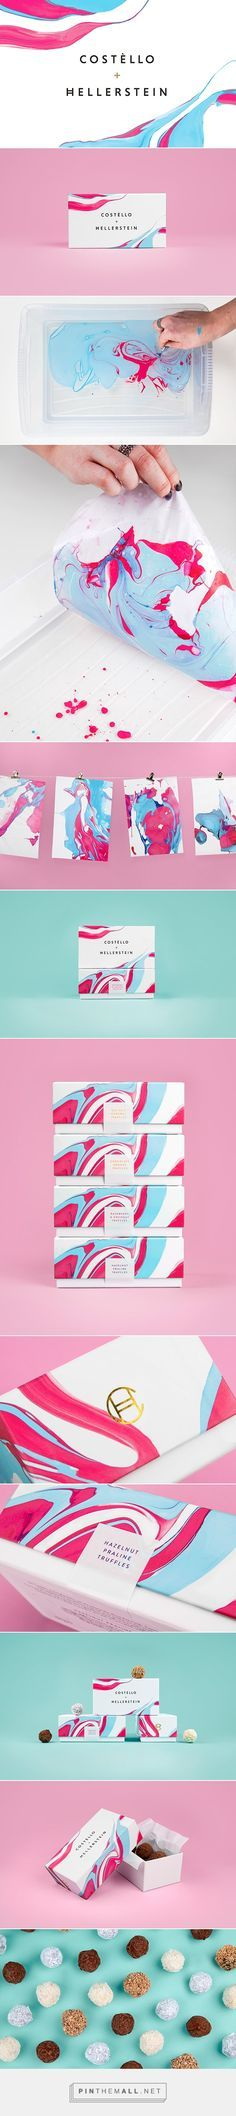 Costello & Hellerstein packaging designed by Robot Food // would also look good for soap//bath bomb packaging